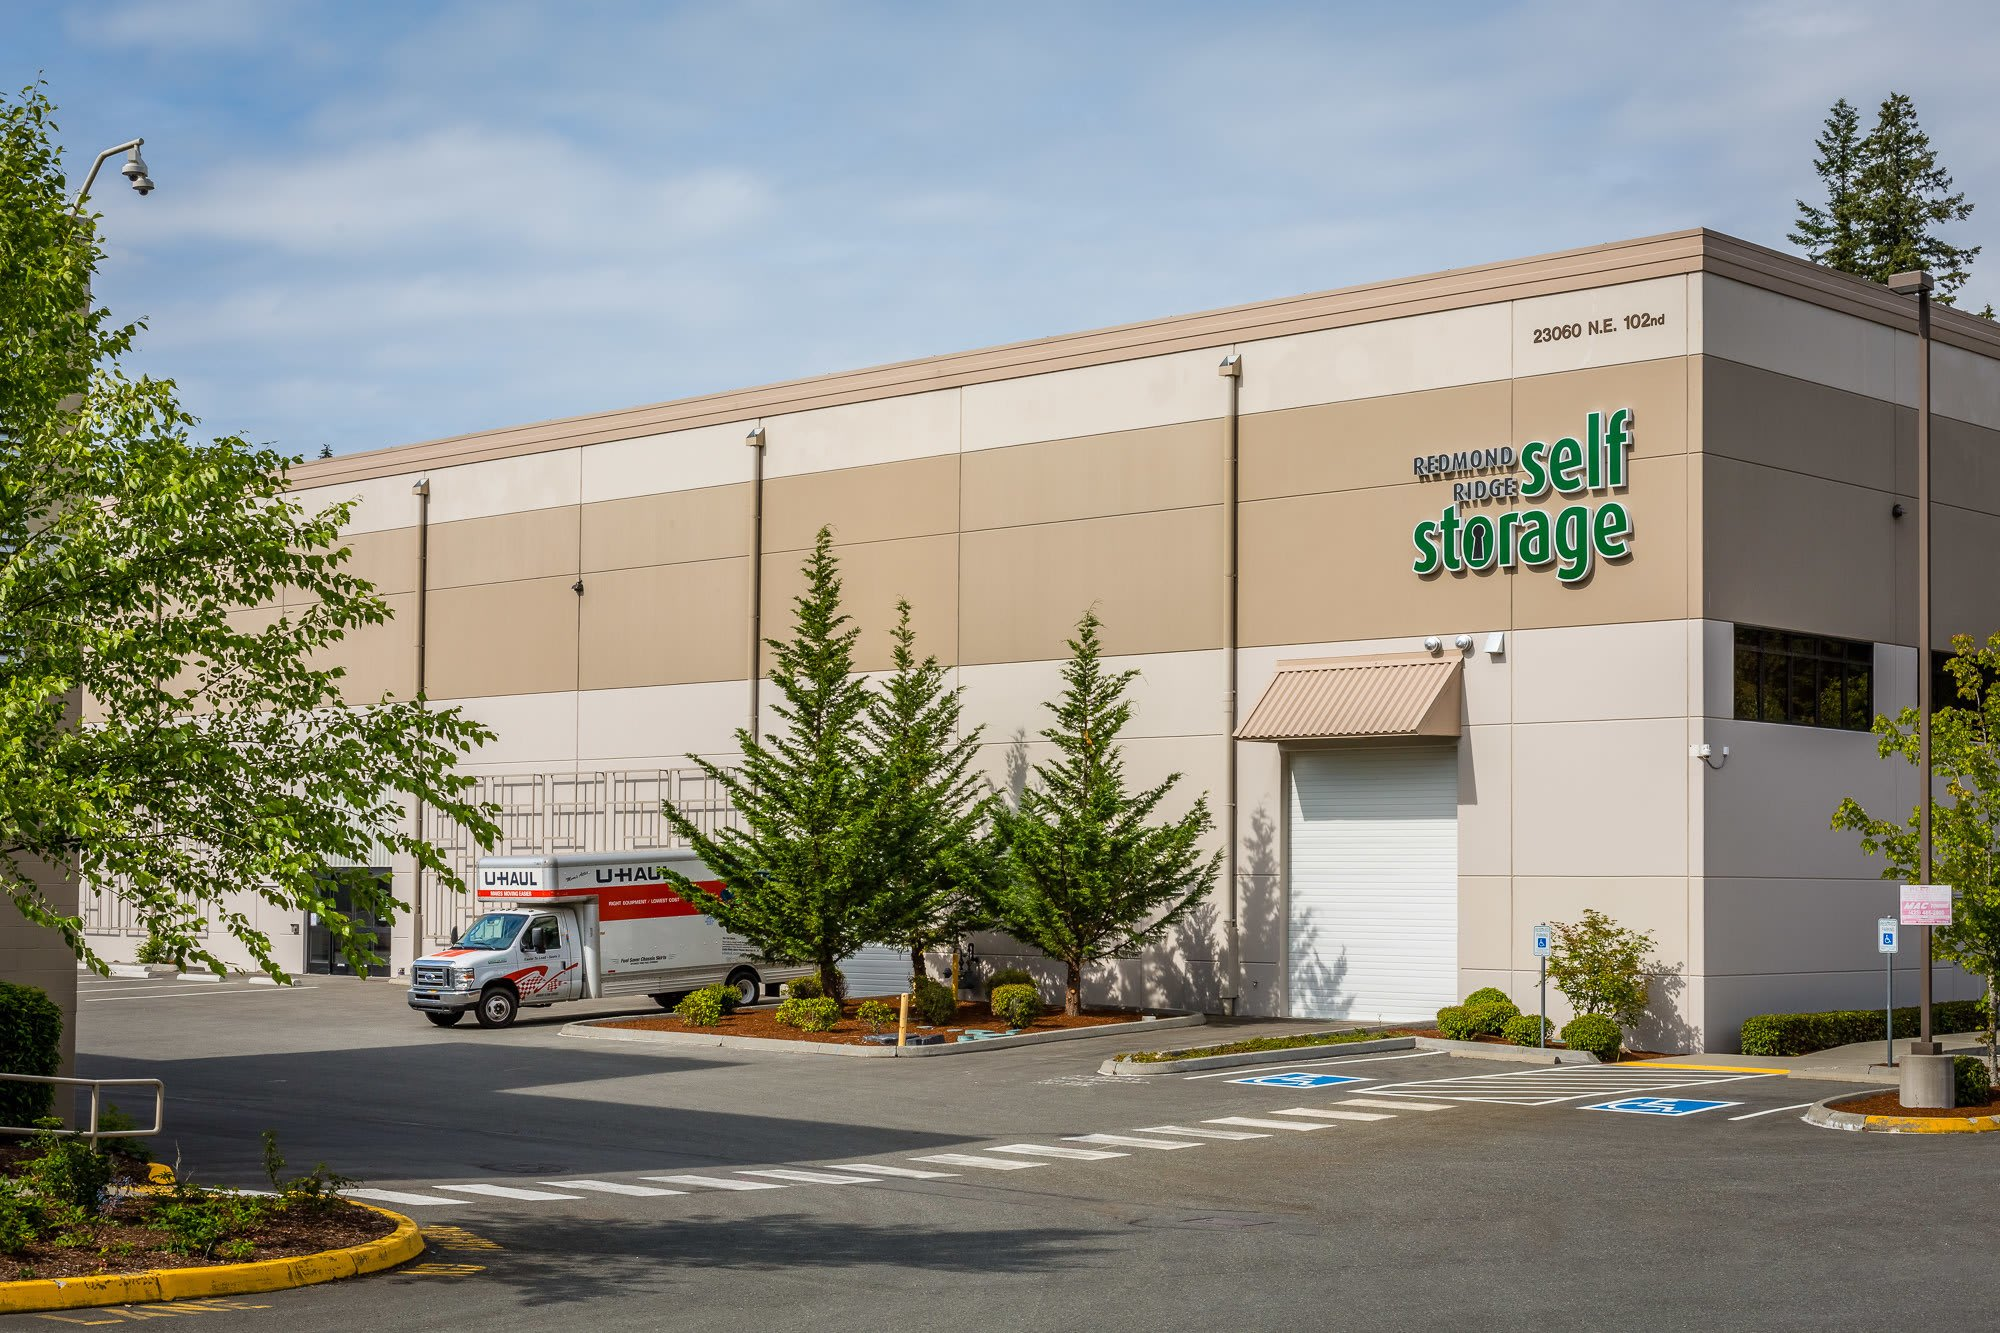 Incroyable Self Storage In Redmond, WA